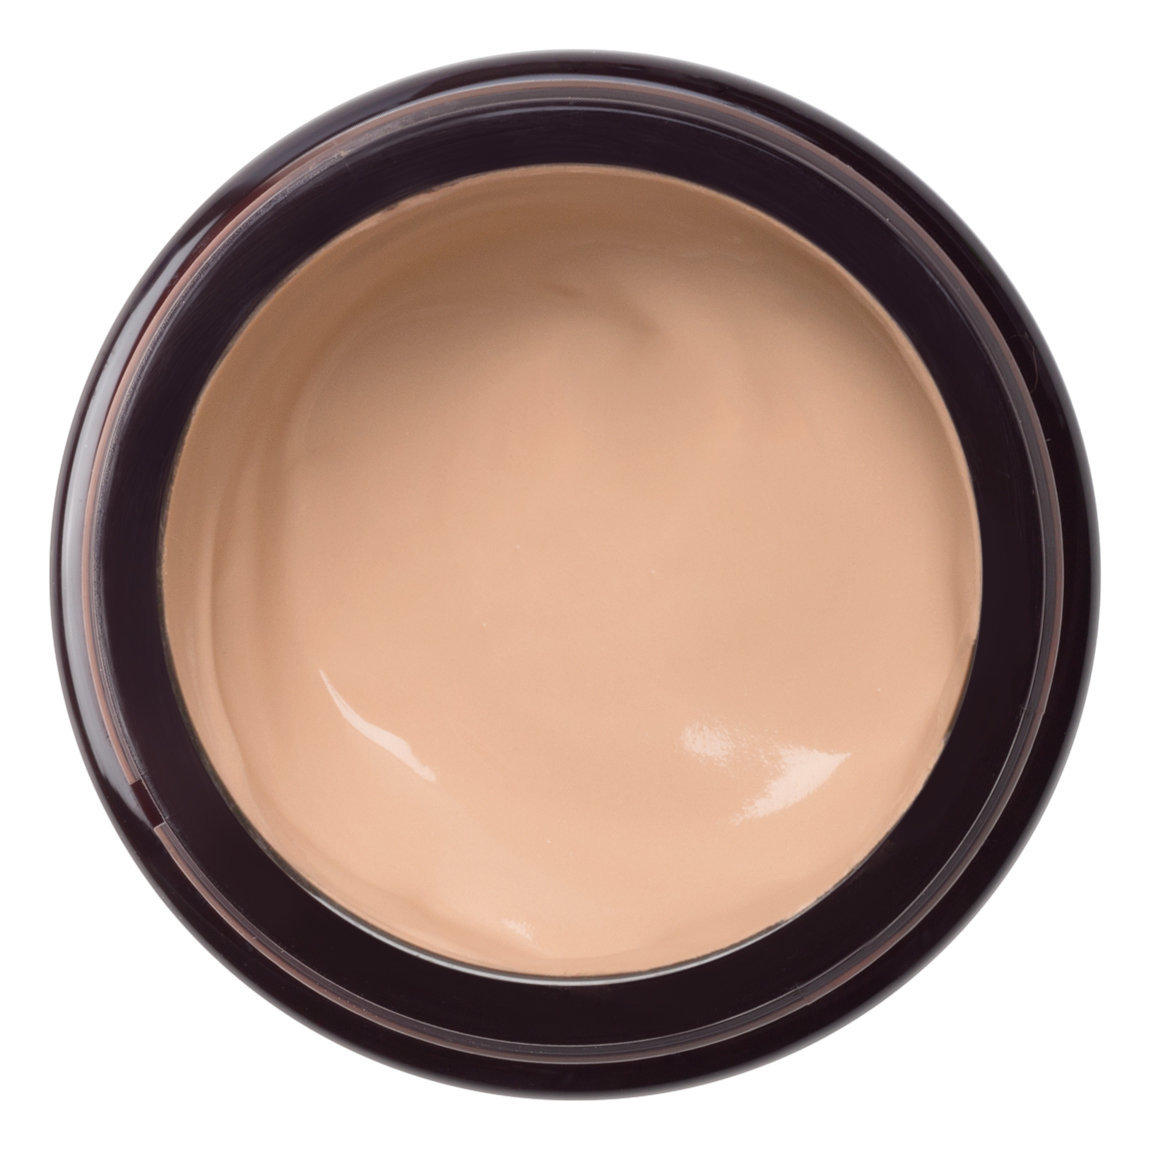 IT Cosmetics  Bye Bye Redness Correcting Cream Transforming Light Beige alternative view 1.